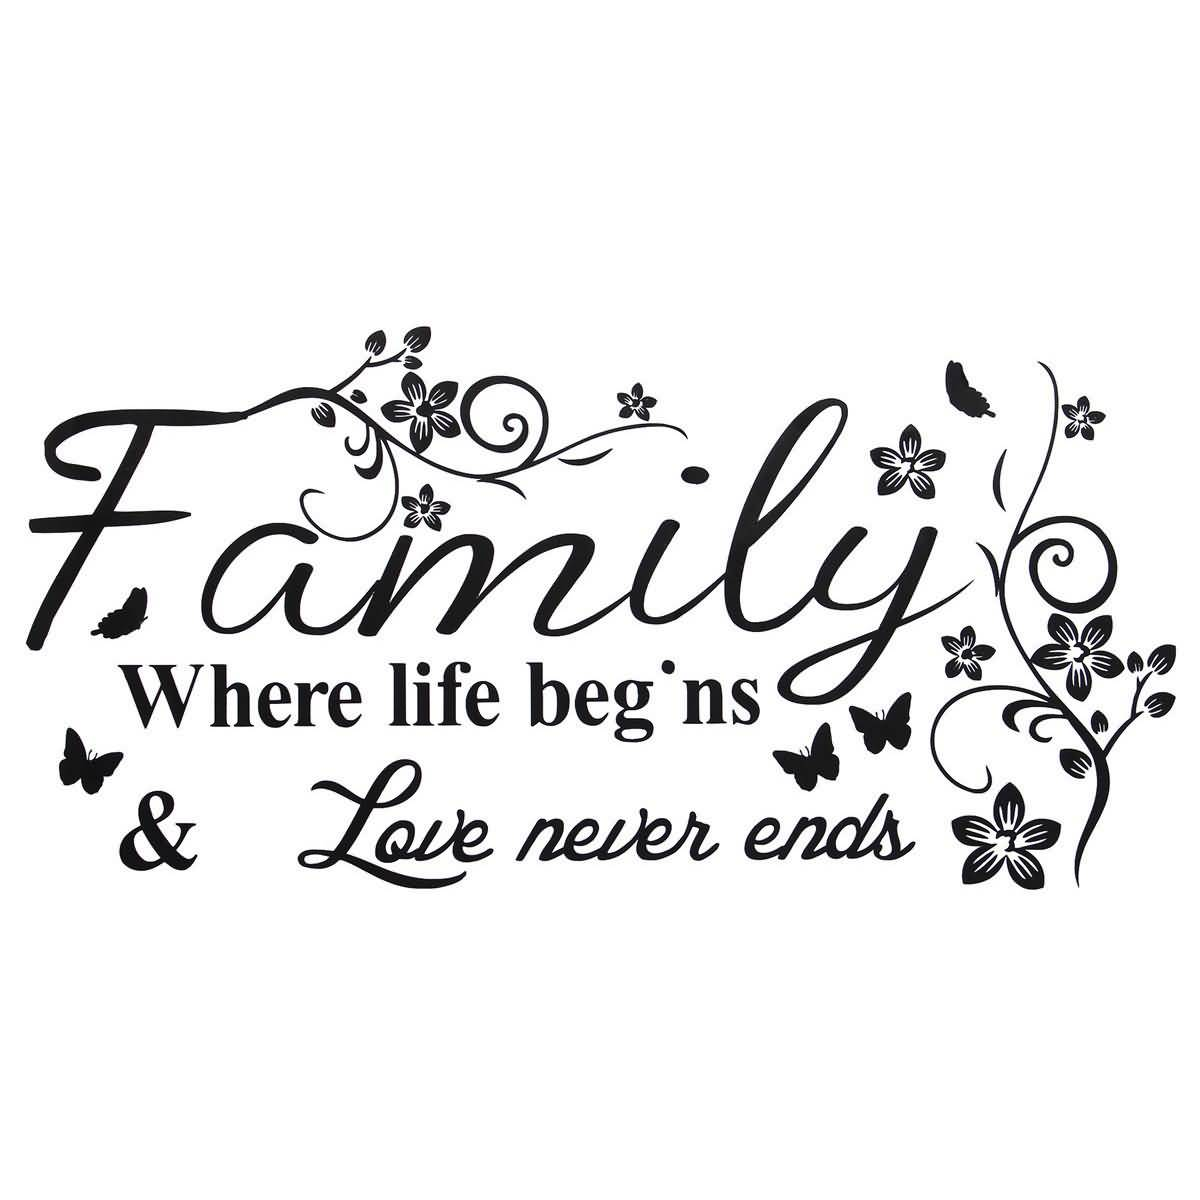 Love Children Quotes Download: 20 Love Life Family Quotes And Sayings Collection